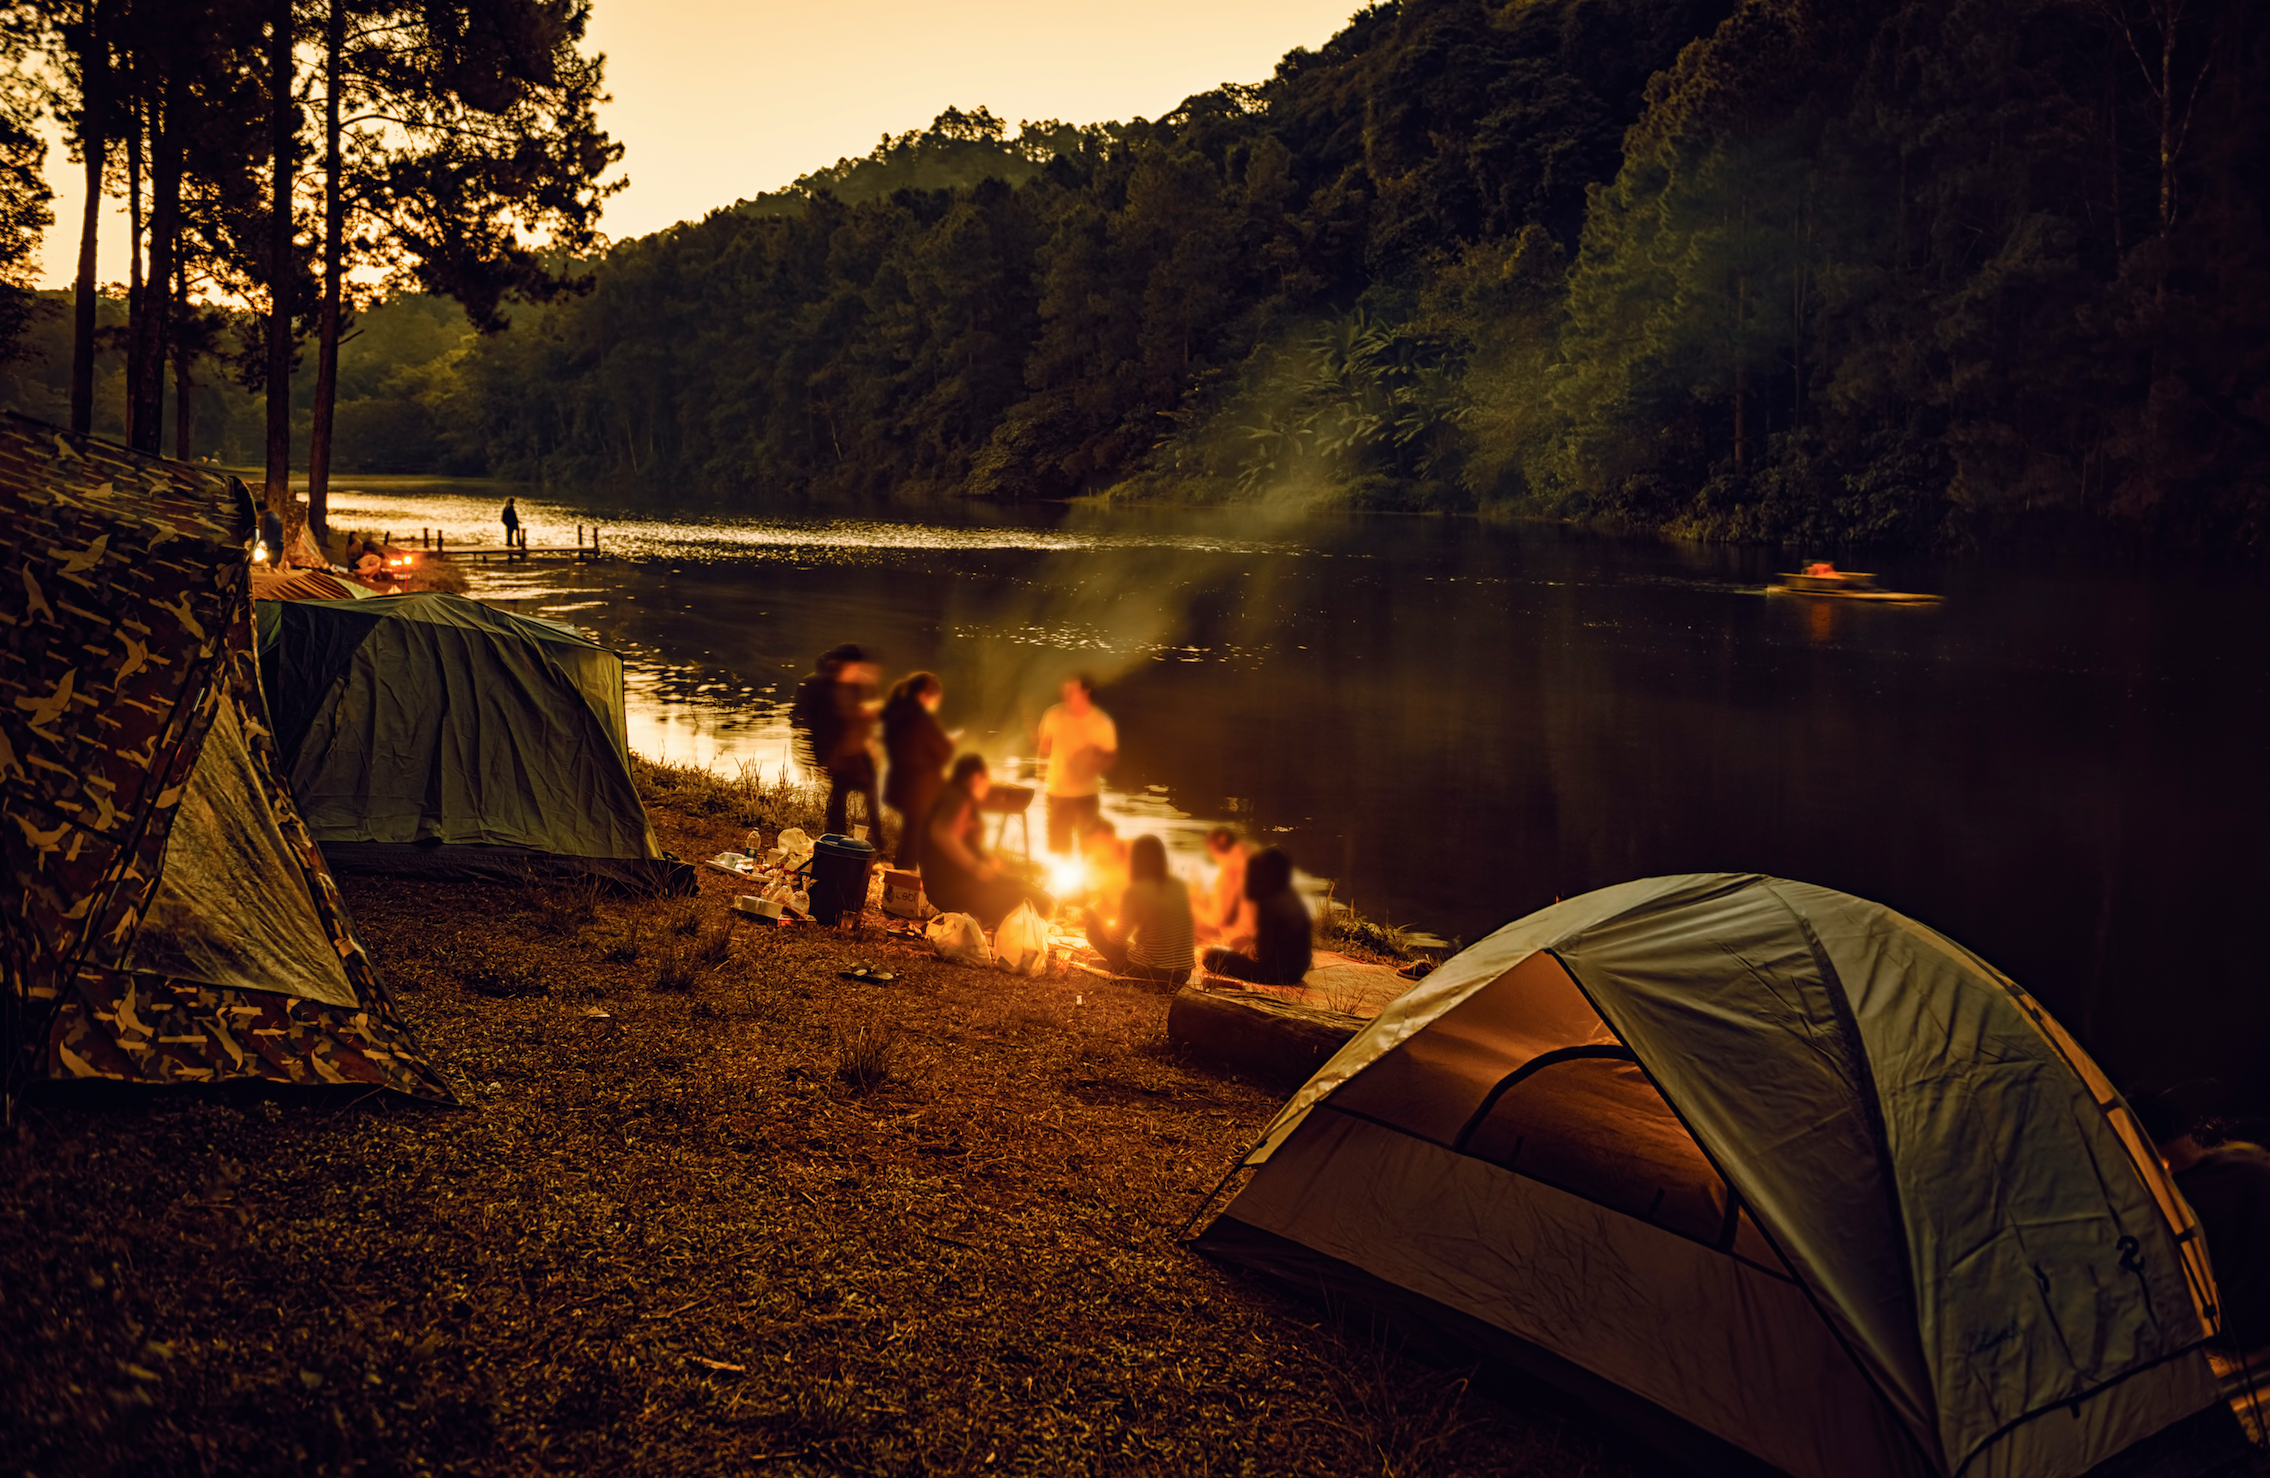 Fathers Day: 10 Campsite Essentials You Can Score for Dad for Under $50